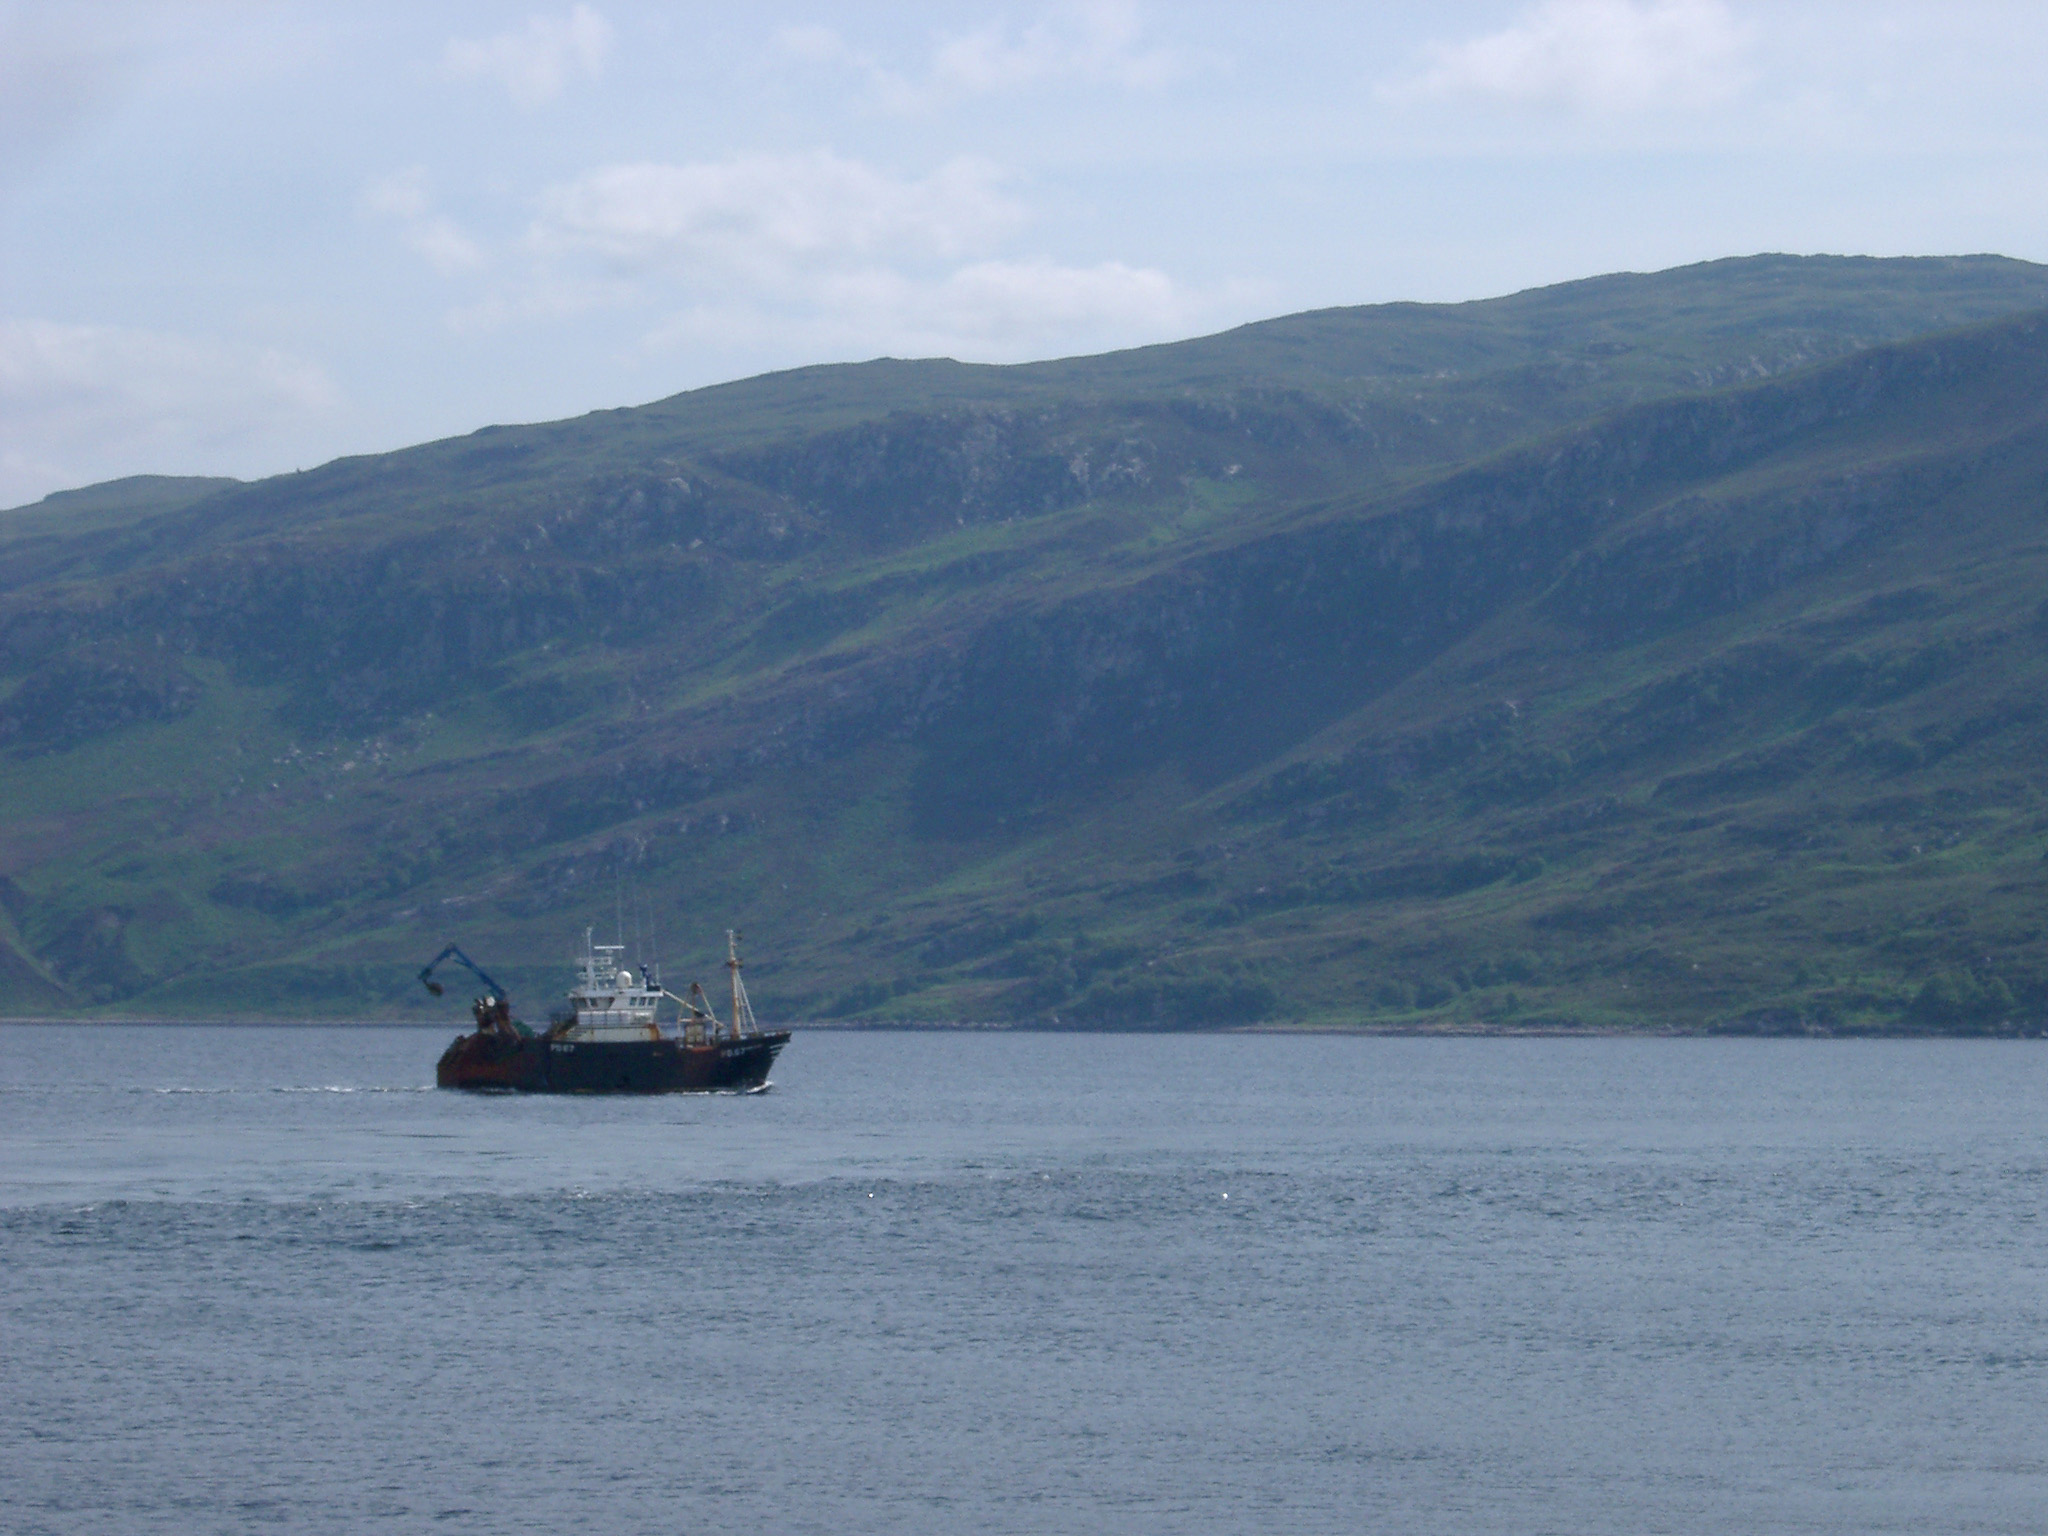 Commercial Fishing Sea Trawler on Scottish Loch with Hills in Background